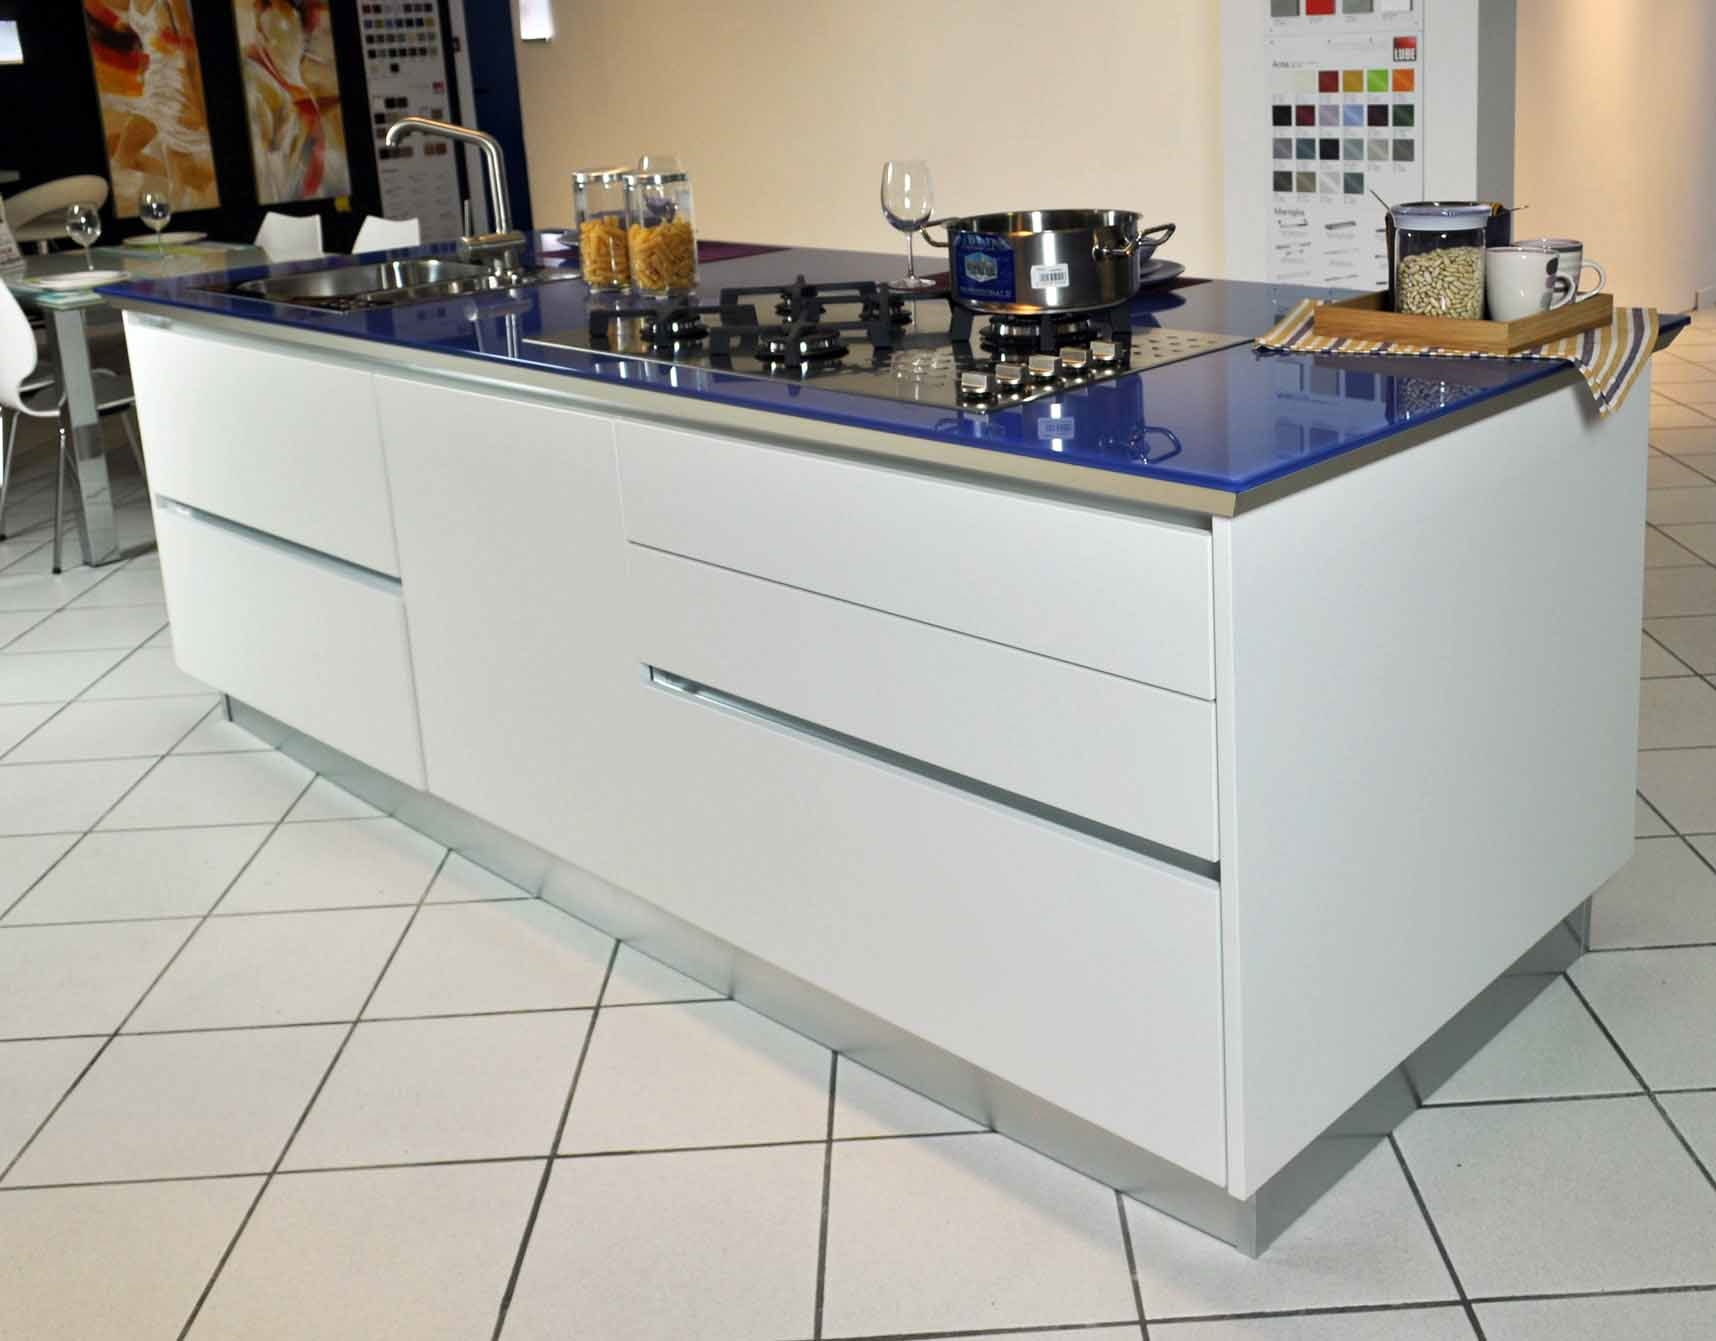 Stunning isola per cucina offerte gallery - Isola in cucina ...